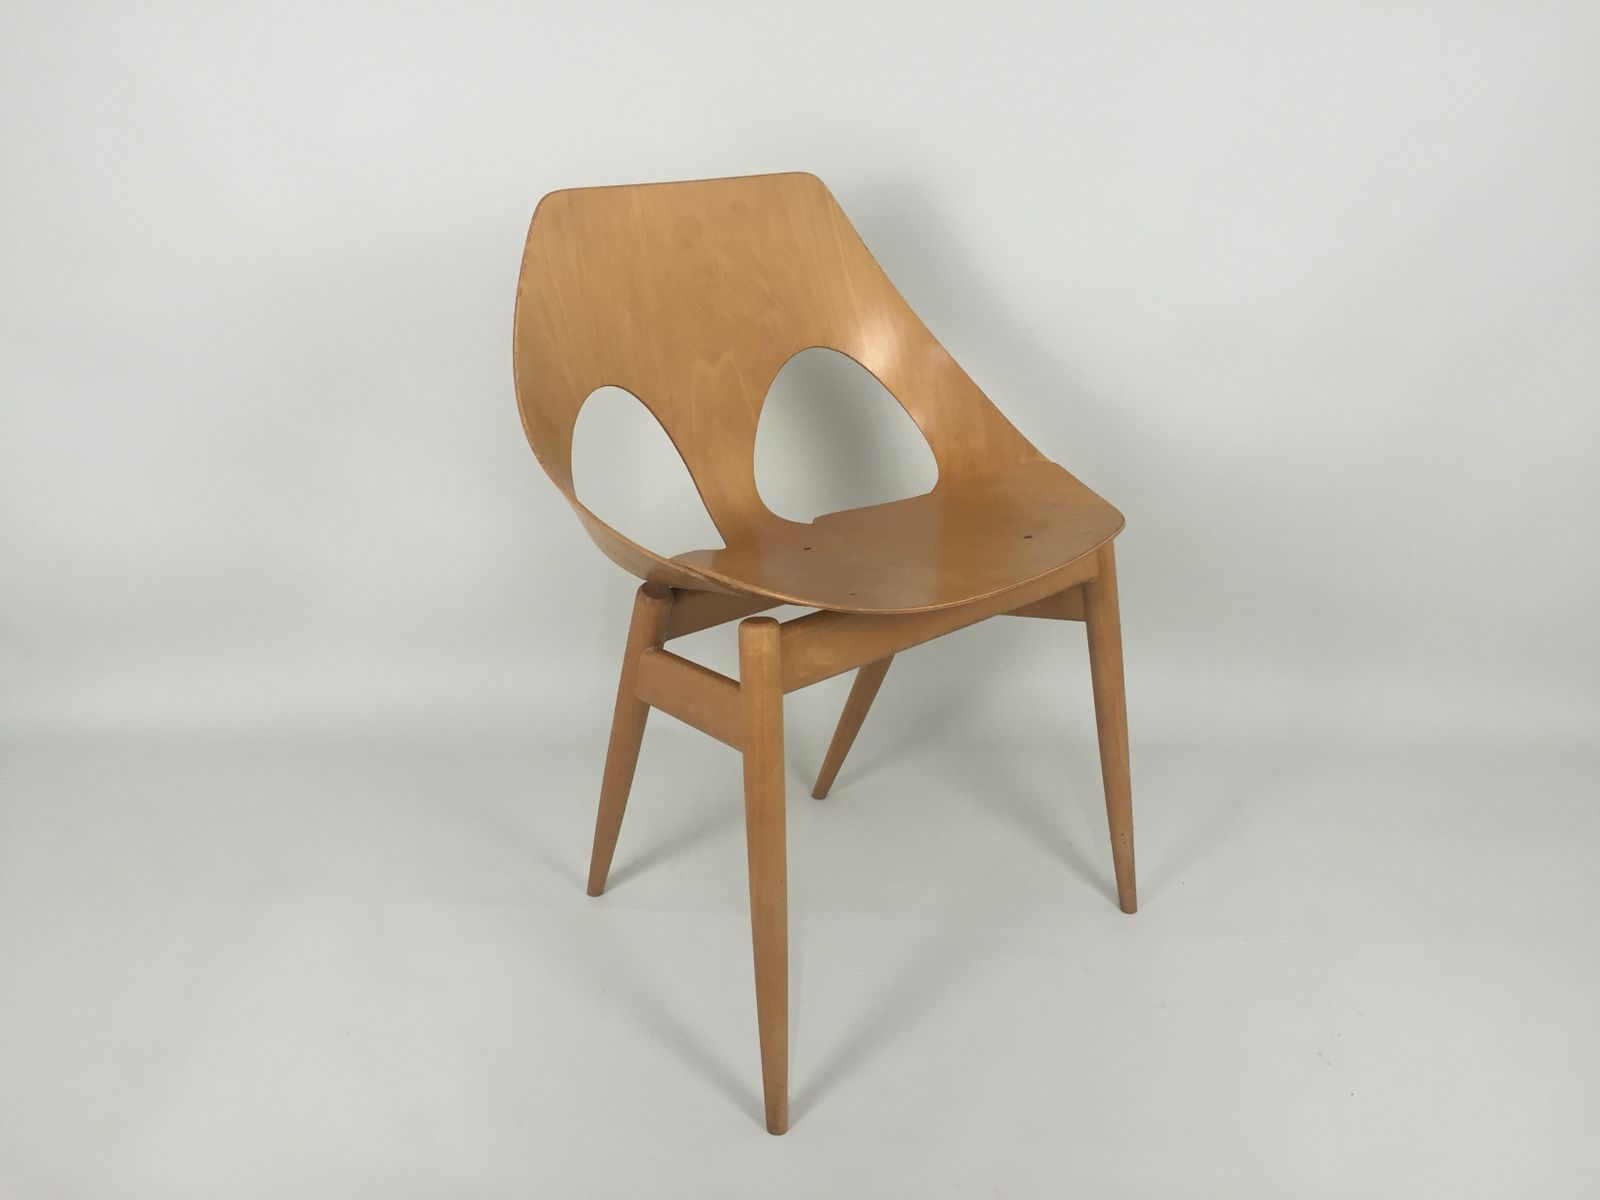 British jason bent plywood chair by carl jacobs and frank guille for